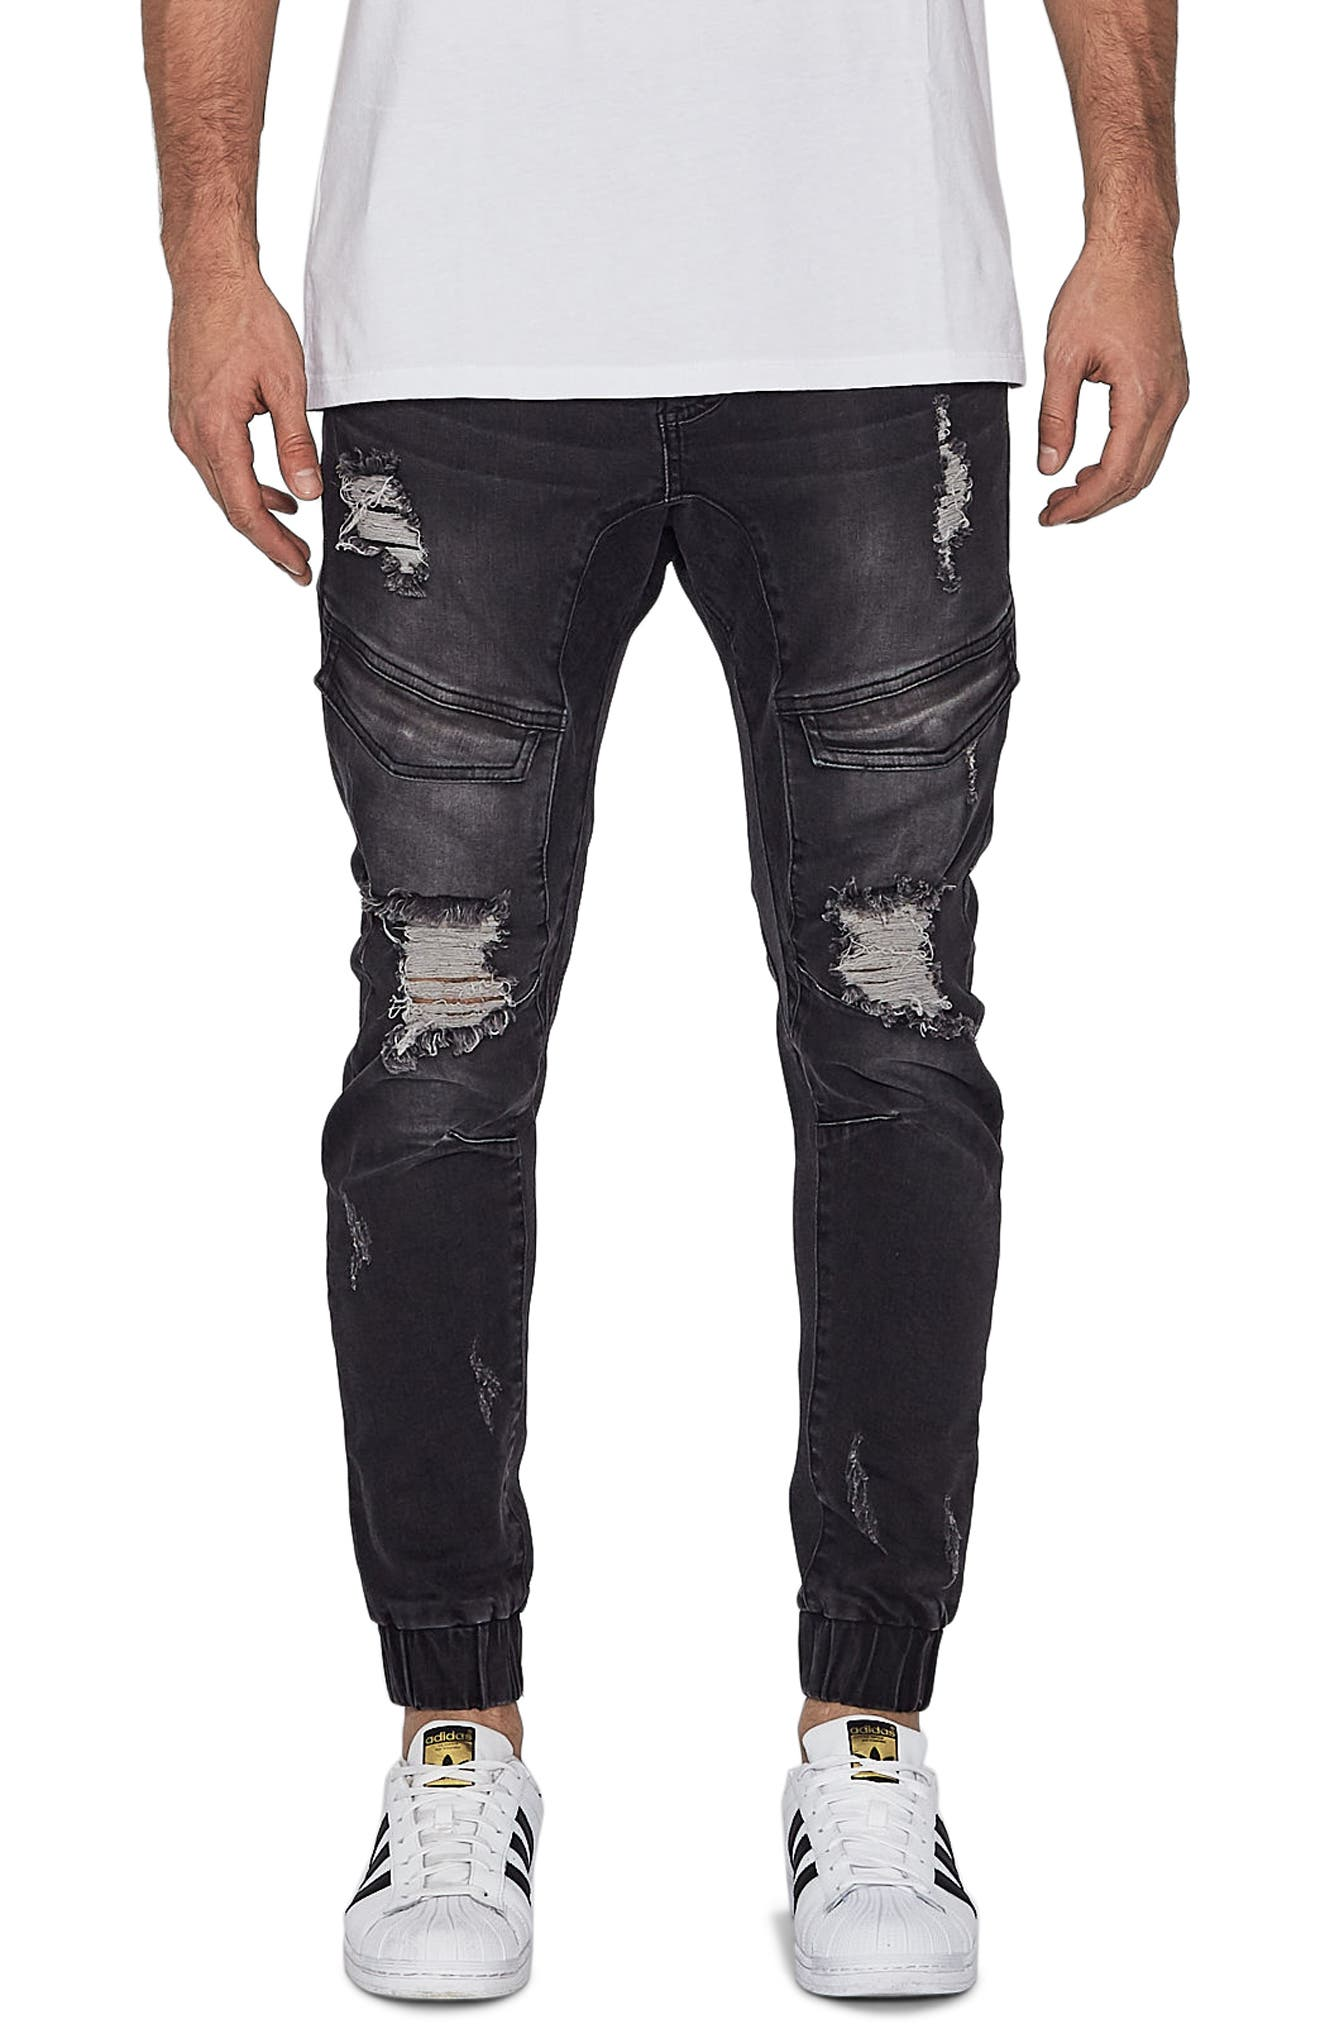 Flight Skinny Denim Jogger Pants,                             Main thumbnail 1, color,